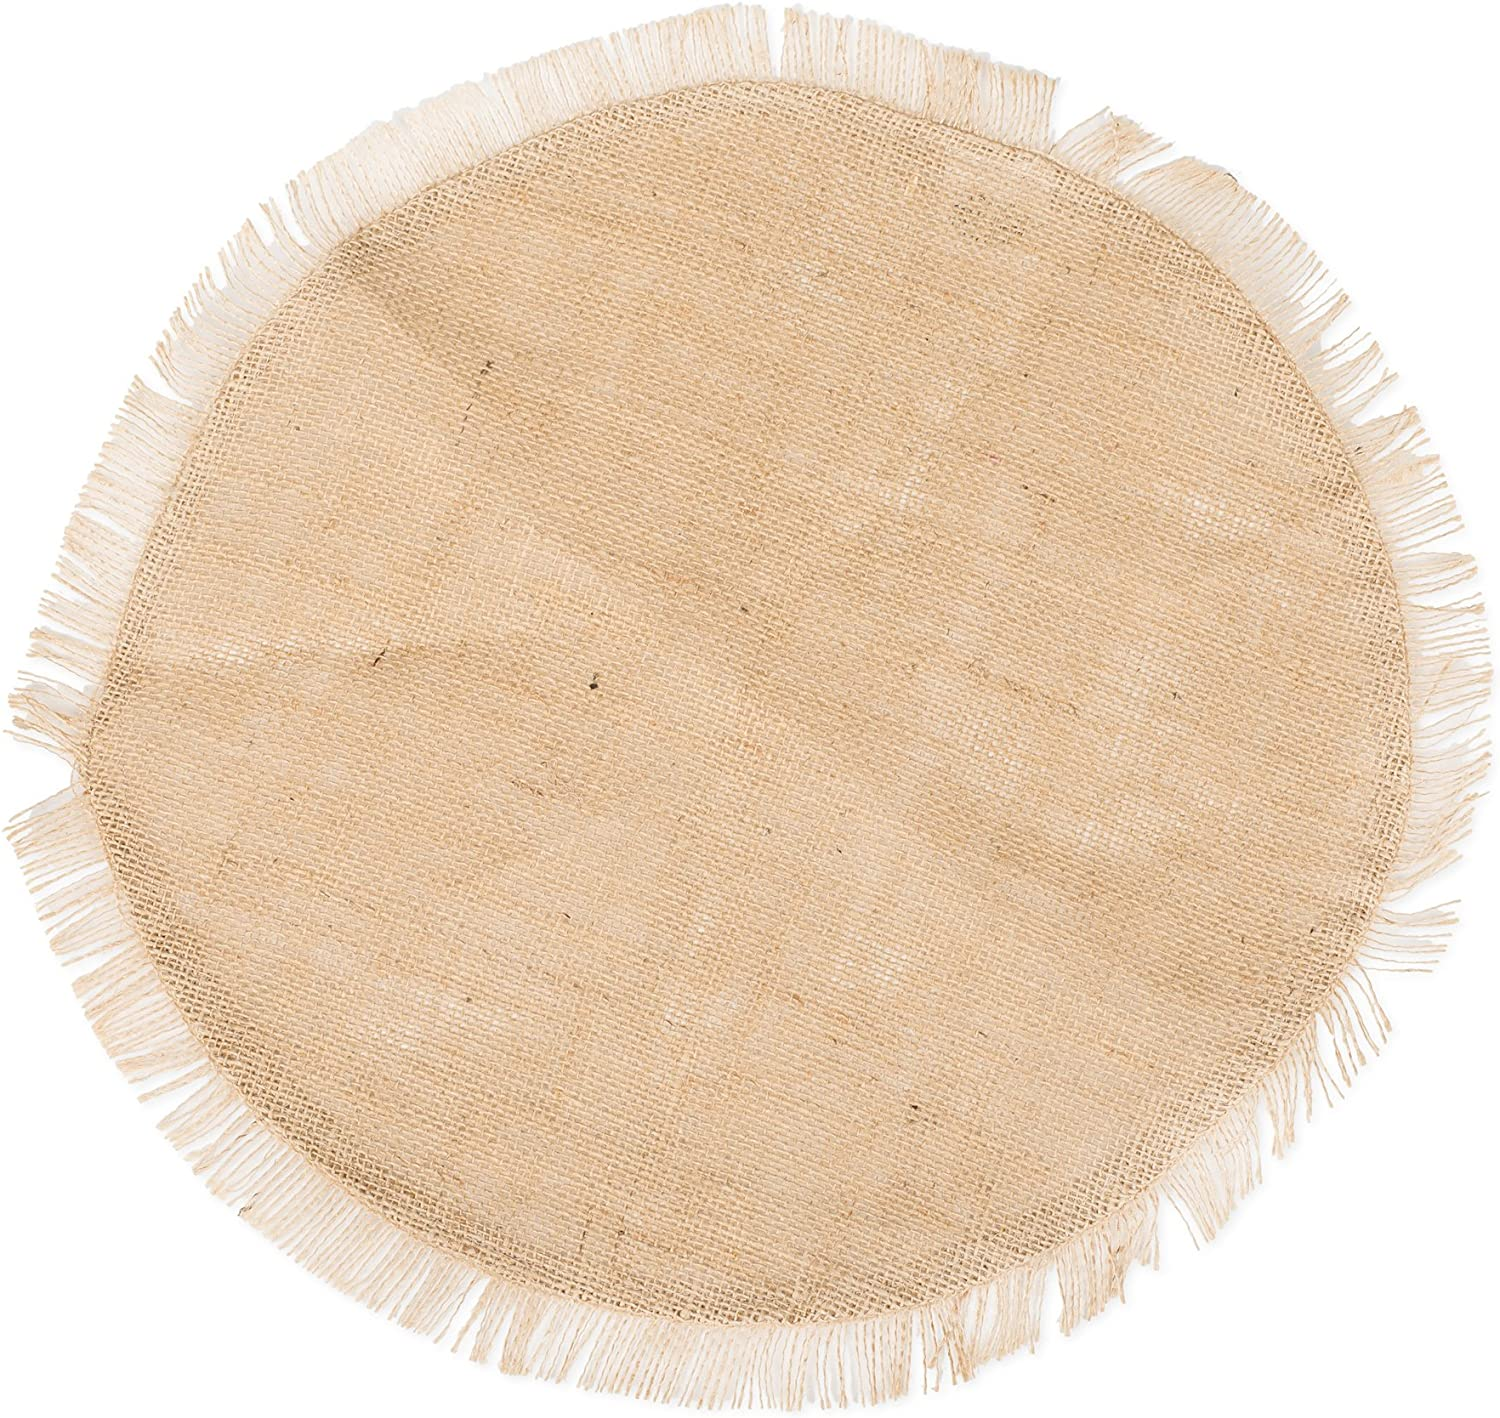 Amazon Com The Country House Collection 14 Inch Fringed Burlap Round Mat 14 Inch Burlap Single Placemat Home Kitchen